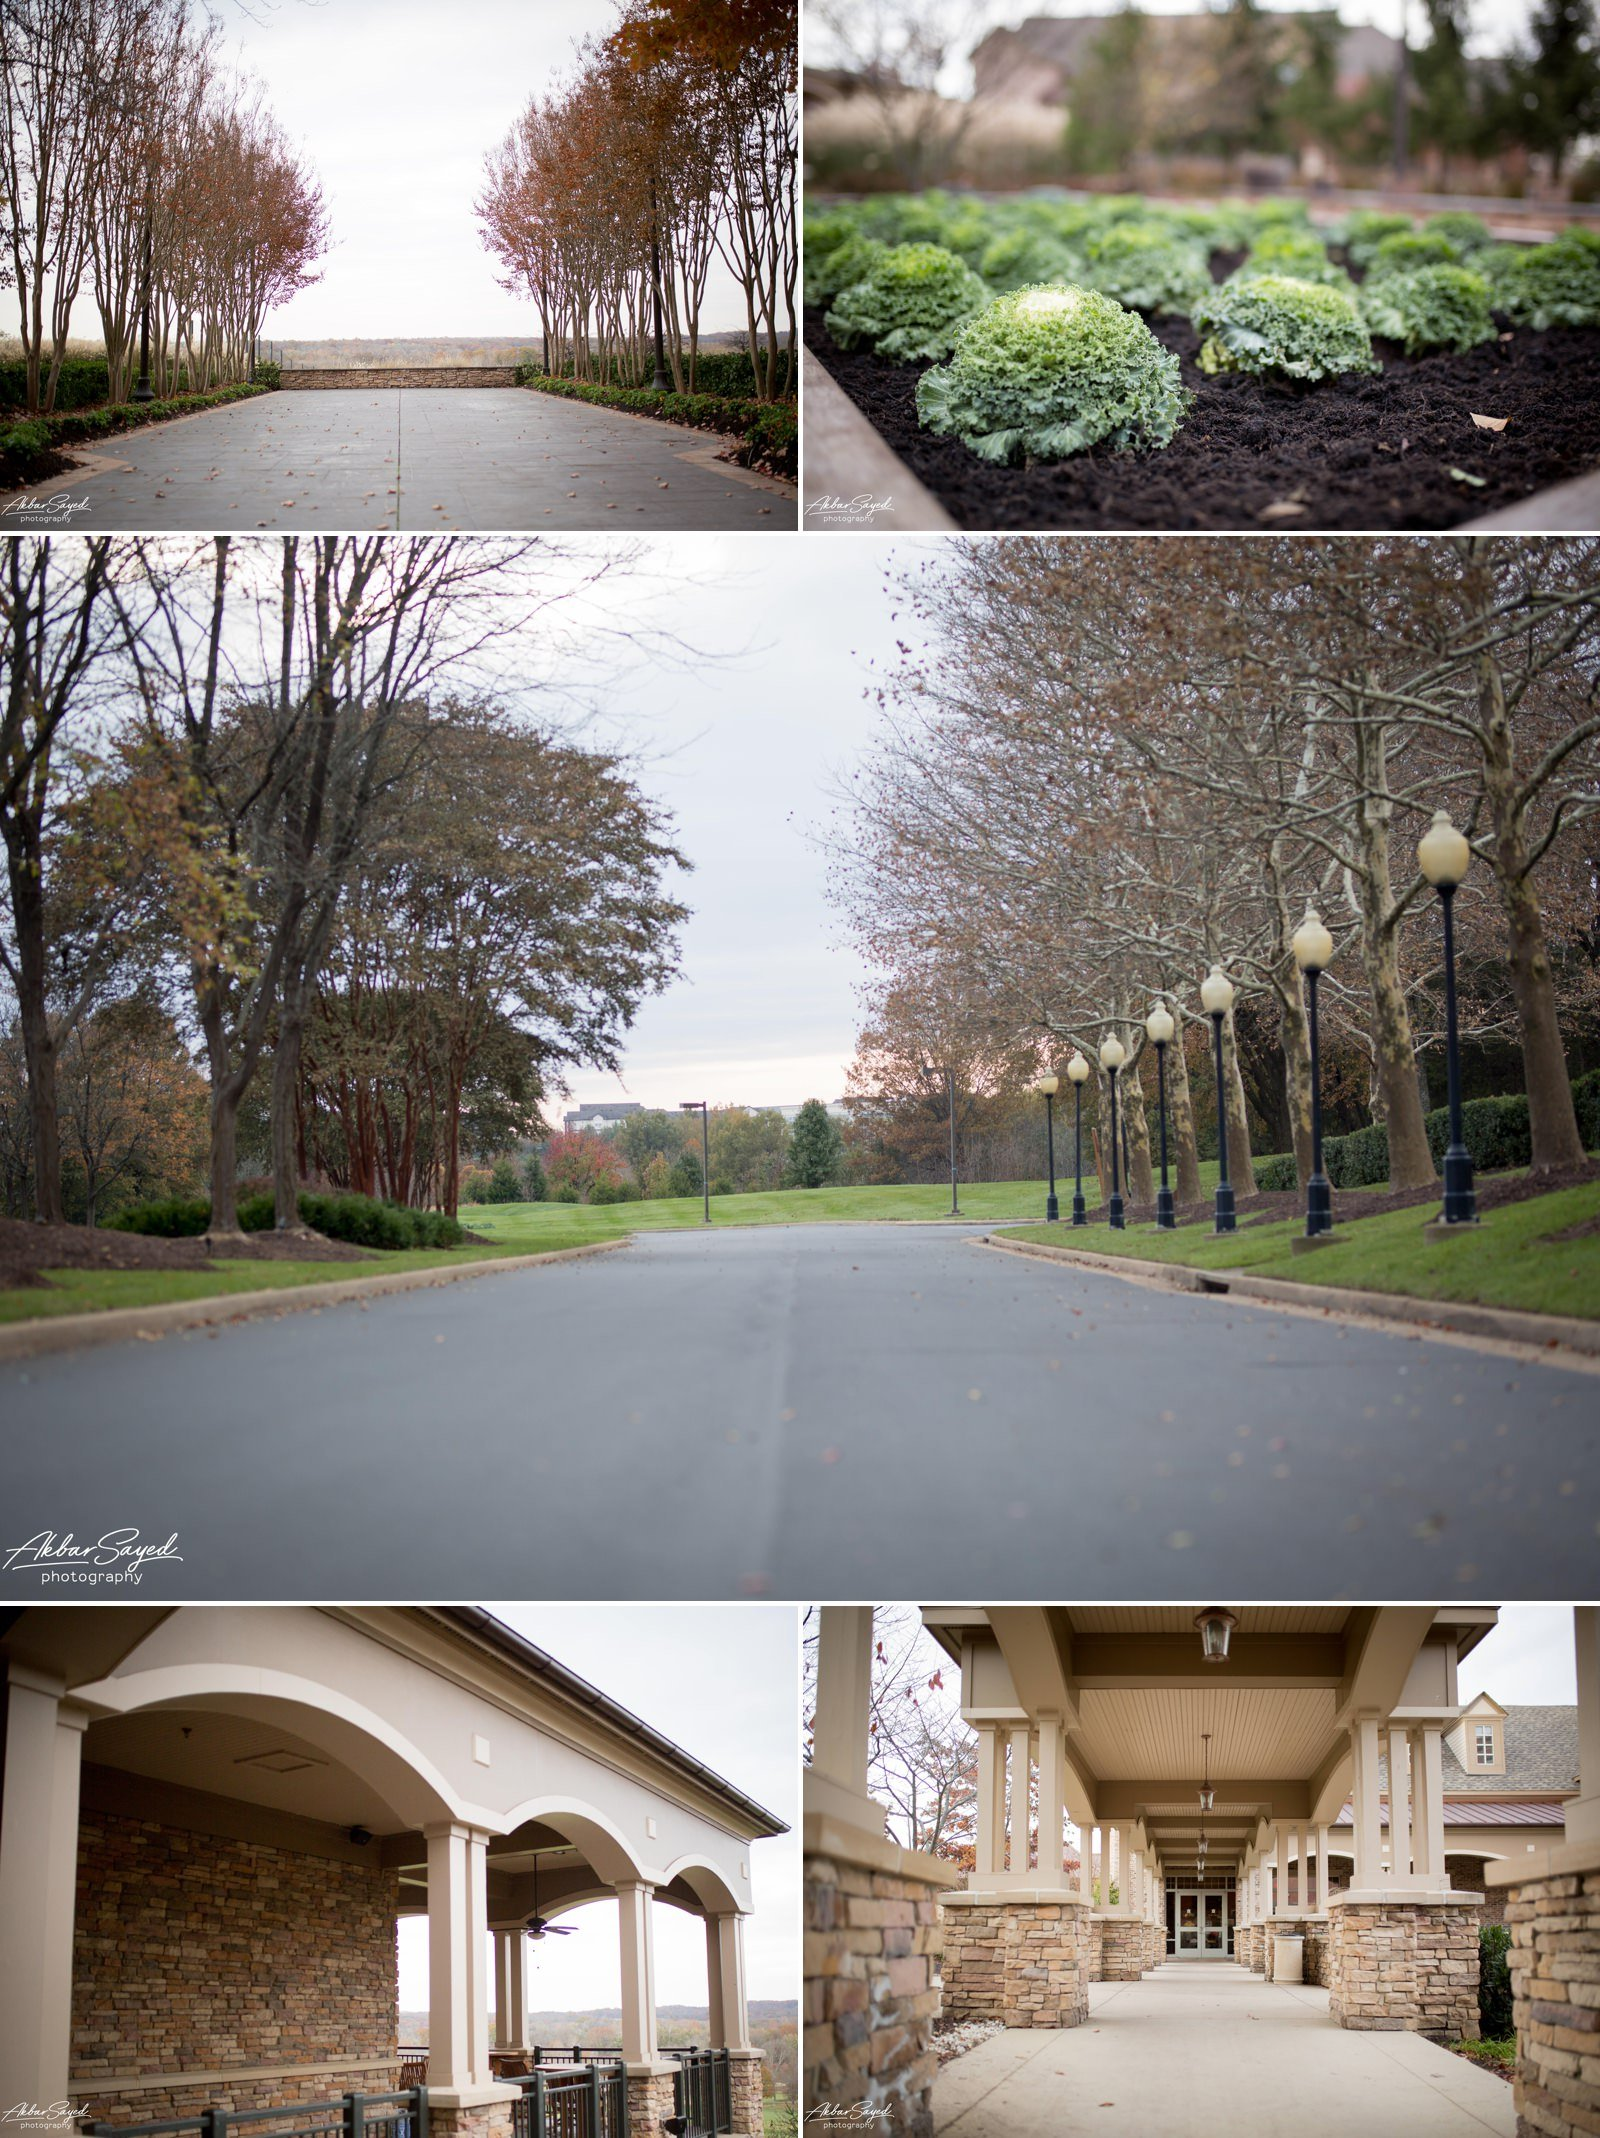 A collage of photographs showing the outdoor area of Lansdowne Resort Wedding Venue in Leesburg, Virginia.